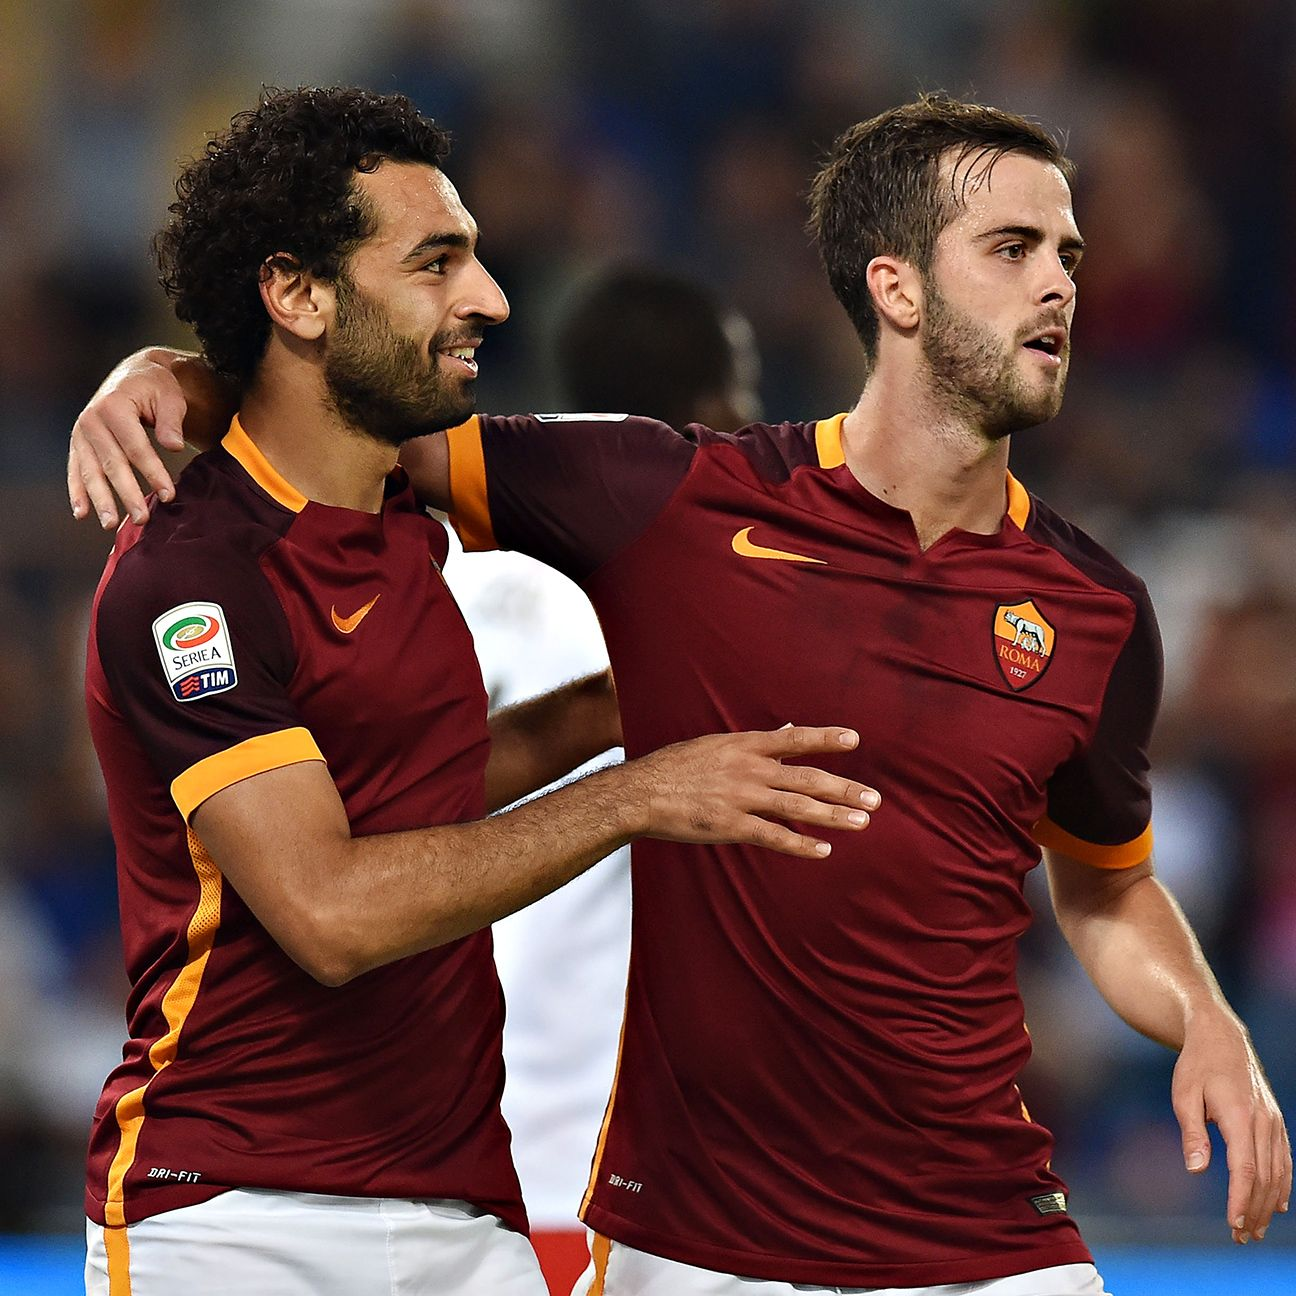 Roma snapped a three-match winless skid with Saturday's 5-1 win over Carpi.